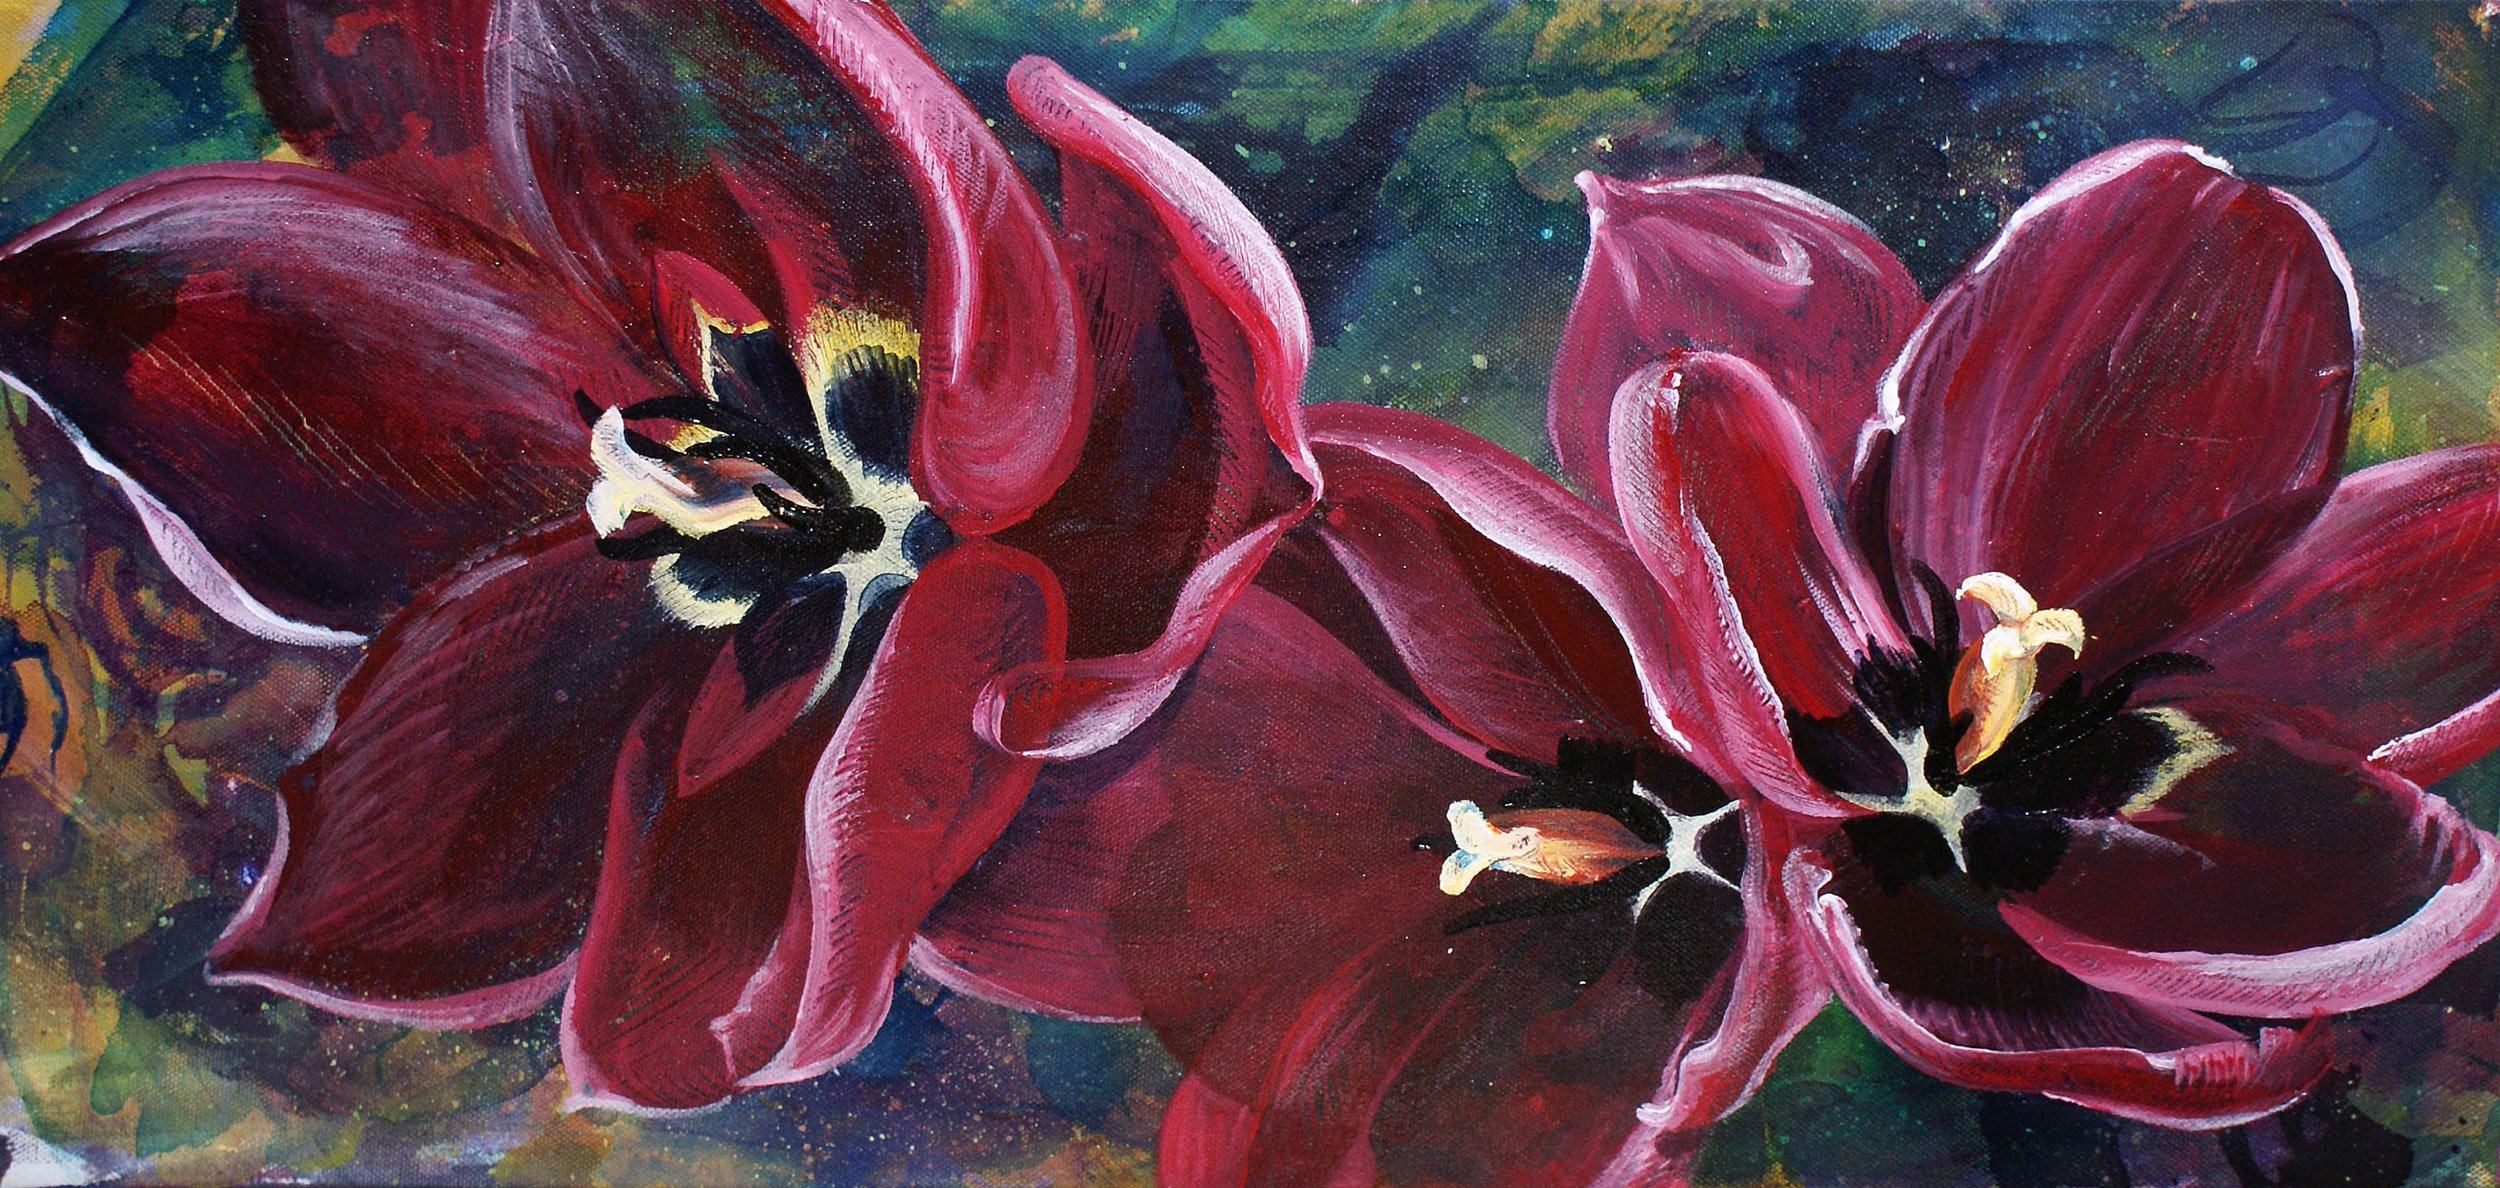 "THUNDER & TULIPS | 12x24"" acrylic on canvas"